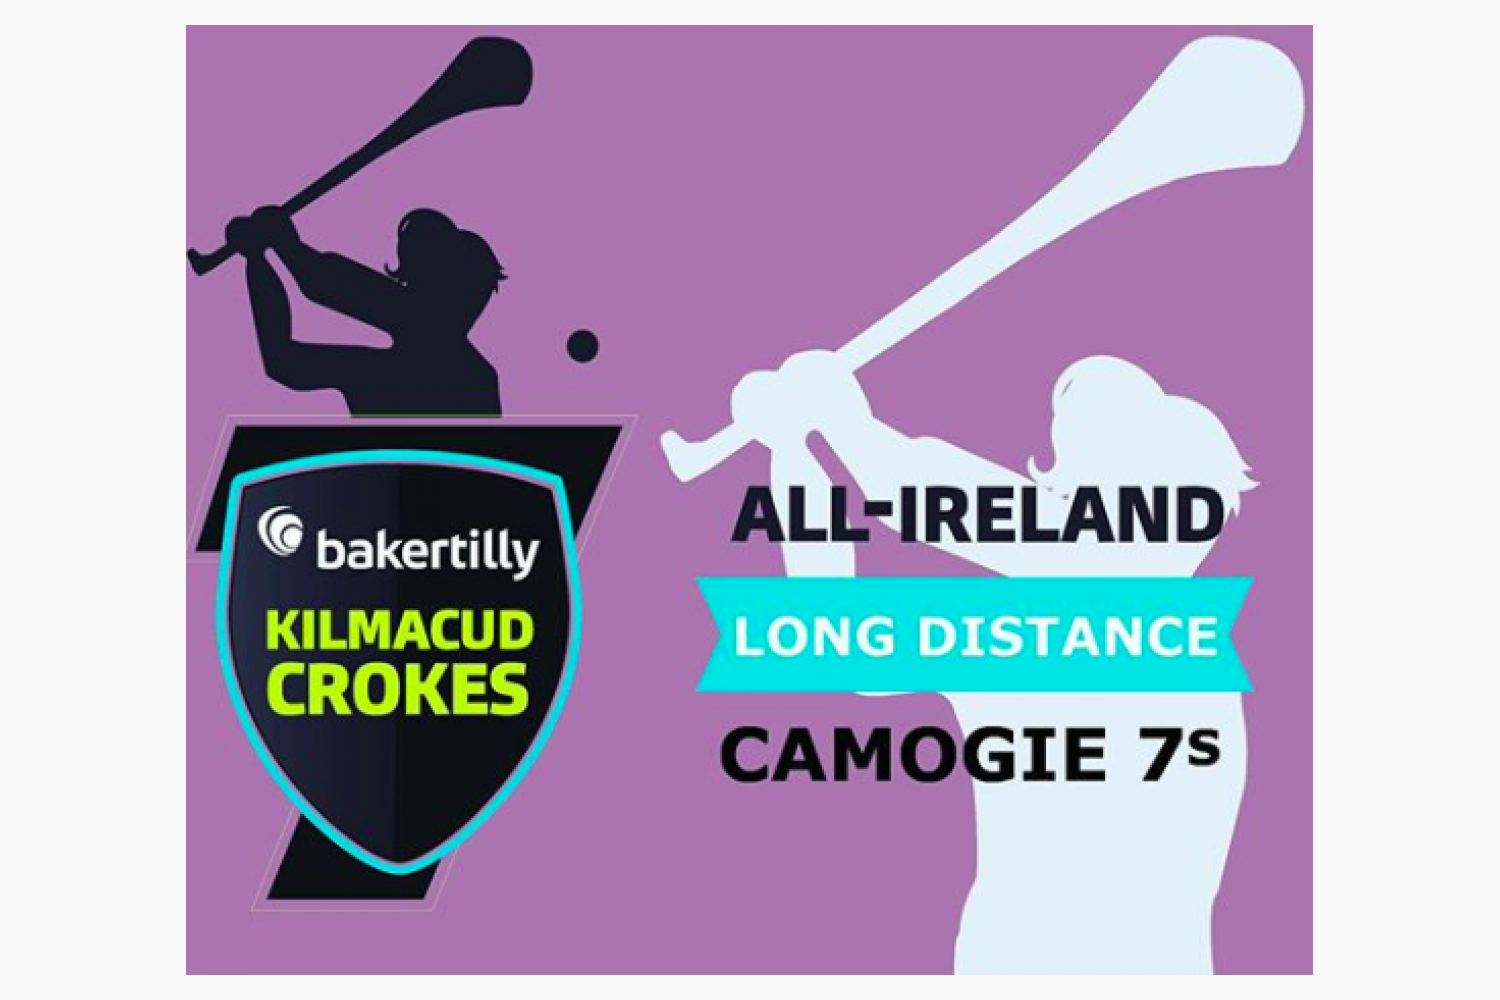 2020 Baker Tilly All-Ireland 'Long-Distance' Camogie 7s from Kilmacud Crokes.